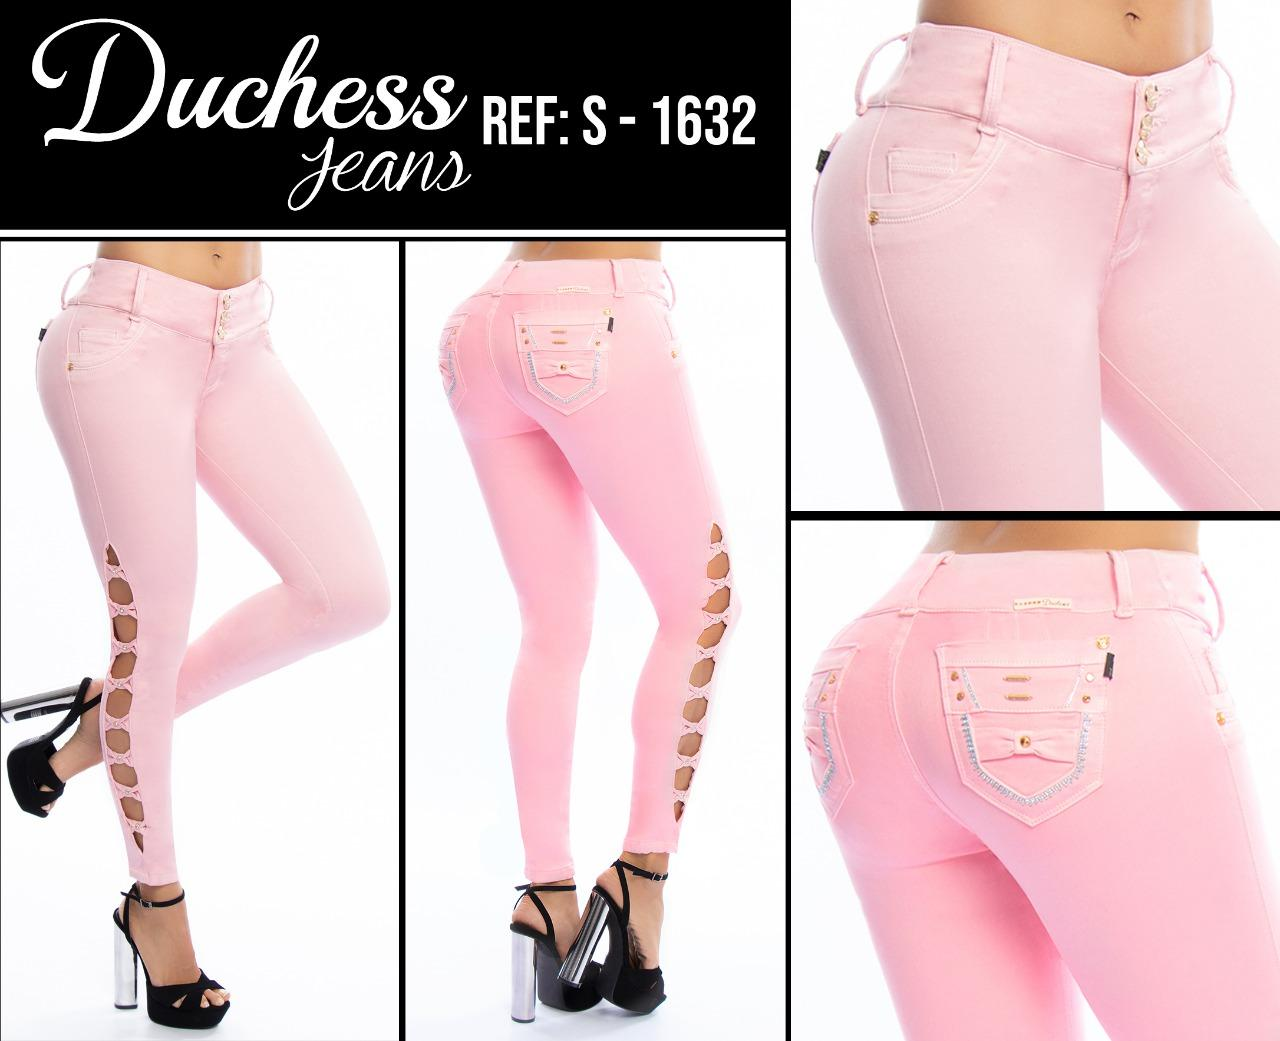 Pink Lady Jeans, Original Colombian Tail Lift, decorative openings on the lower side of the leg